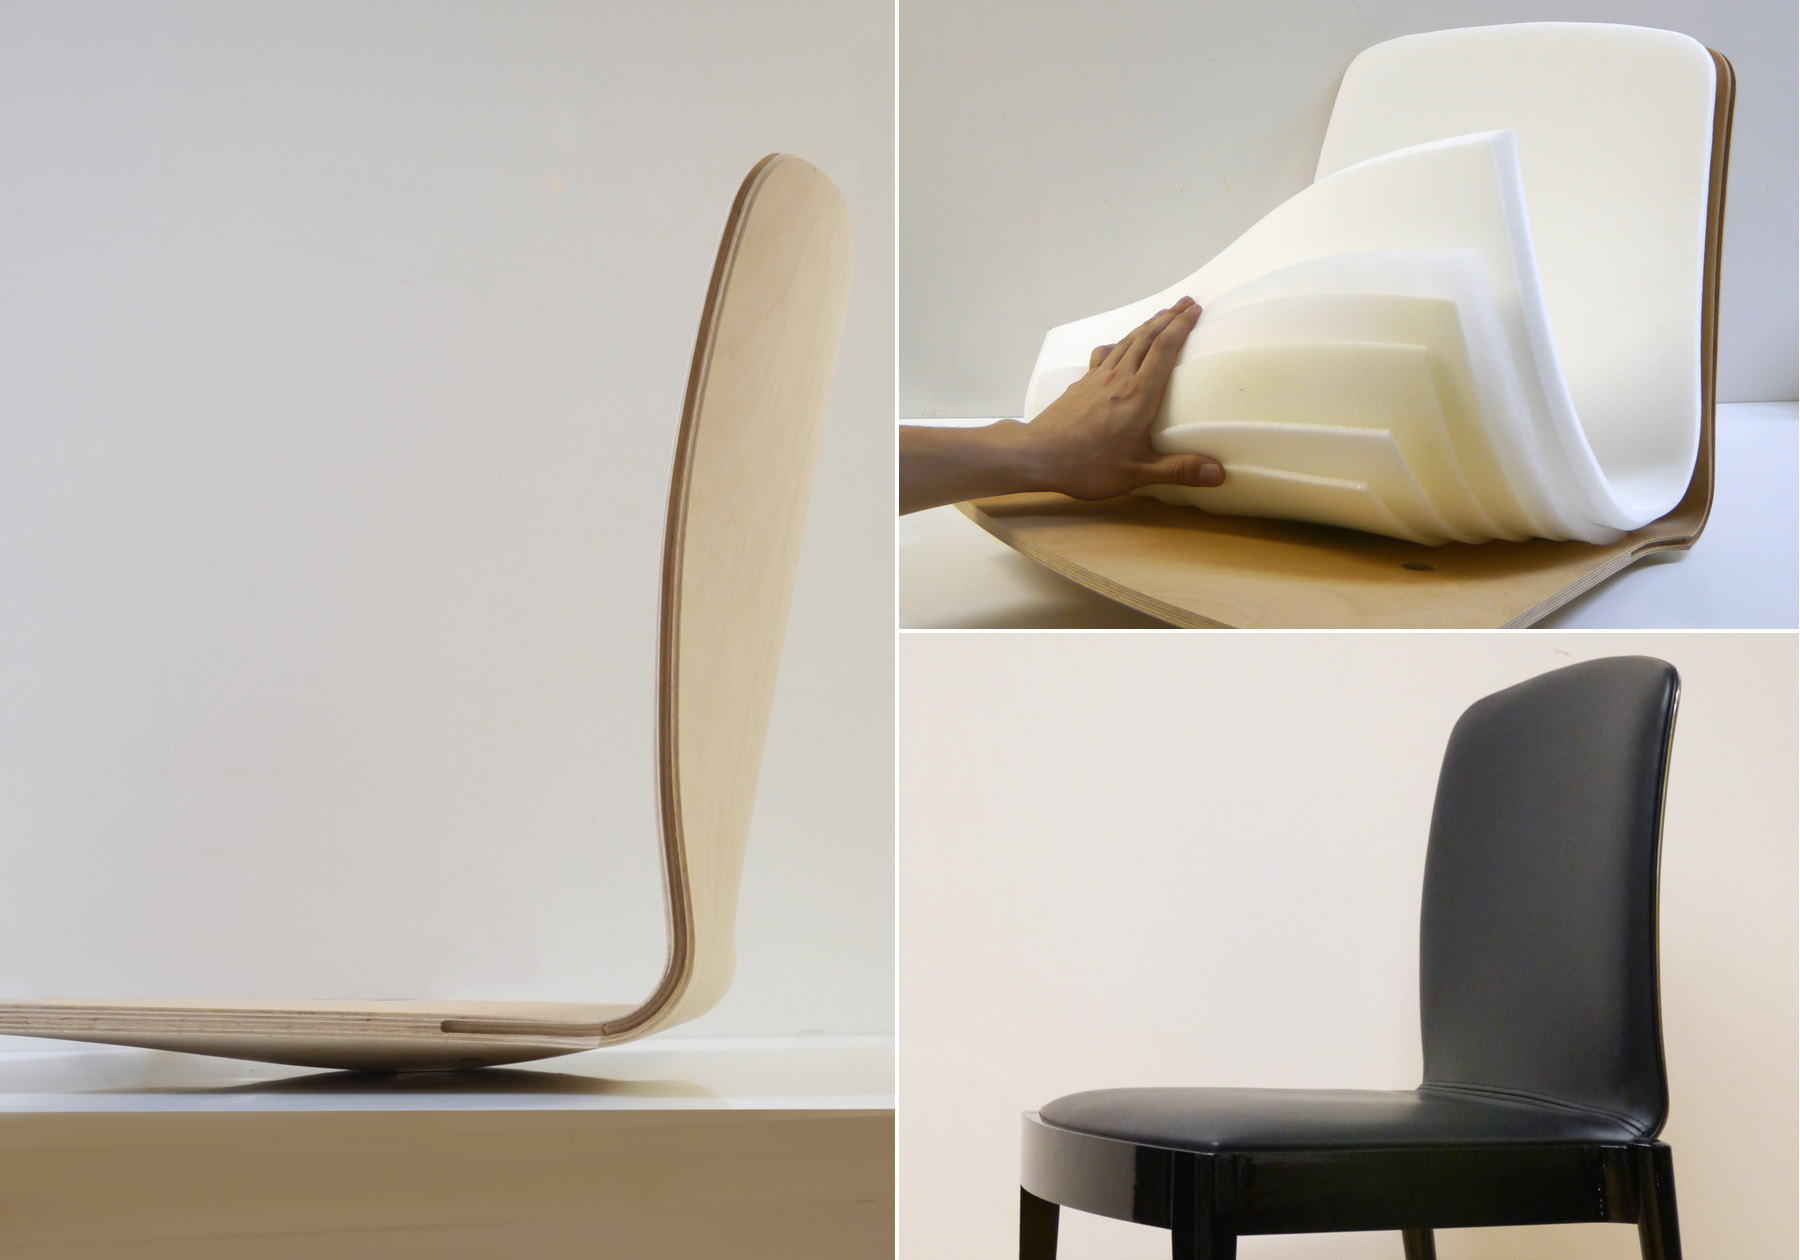 PRODUCT : CAMBIA [カンビア] Chair